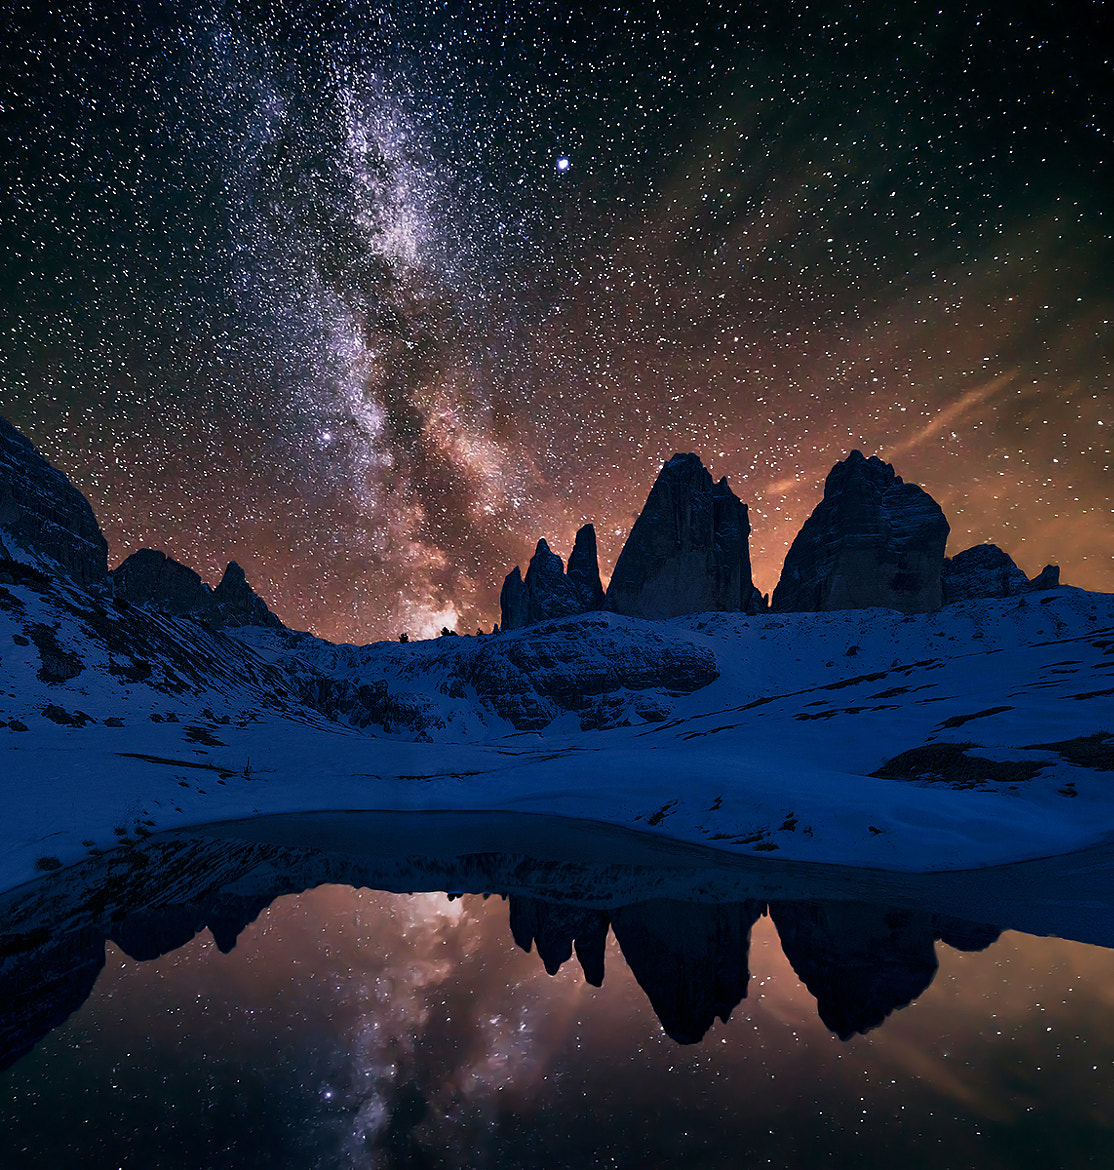 Photograph Dolomites by Max Rive on 500px